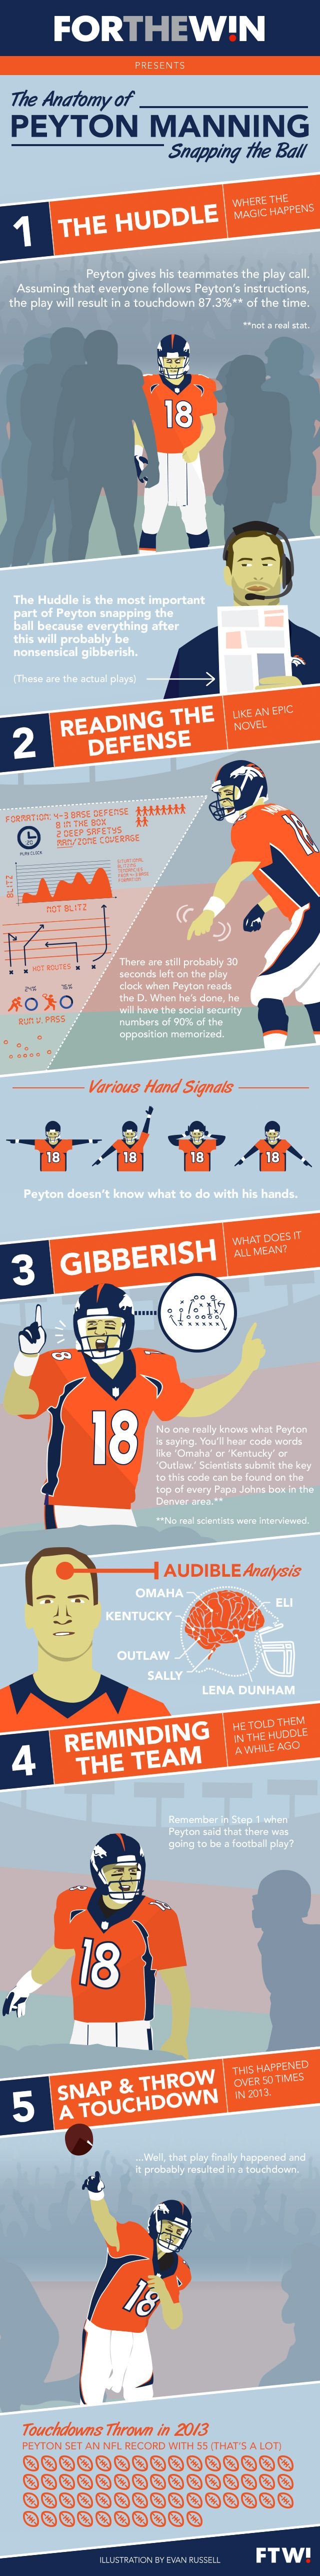 A rare glimpse into the mind of a legend: Peyton Manning... I am a Peyton fan, but this is too funny not to share. Haha!!